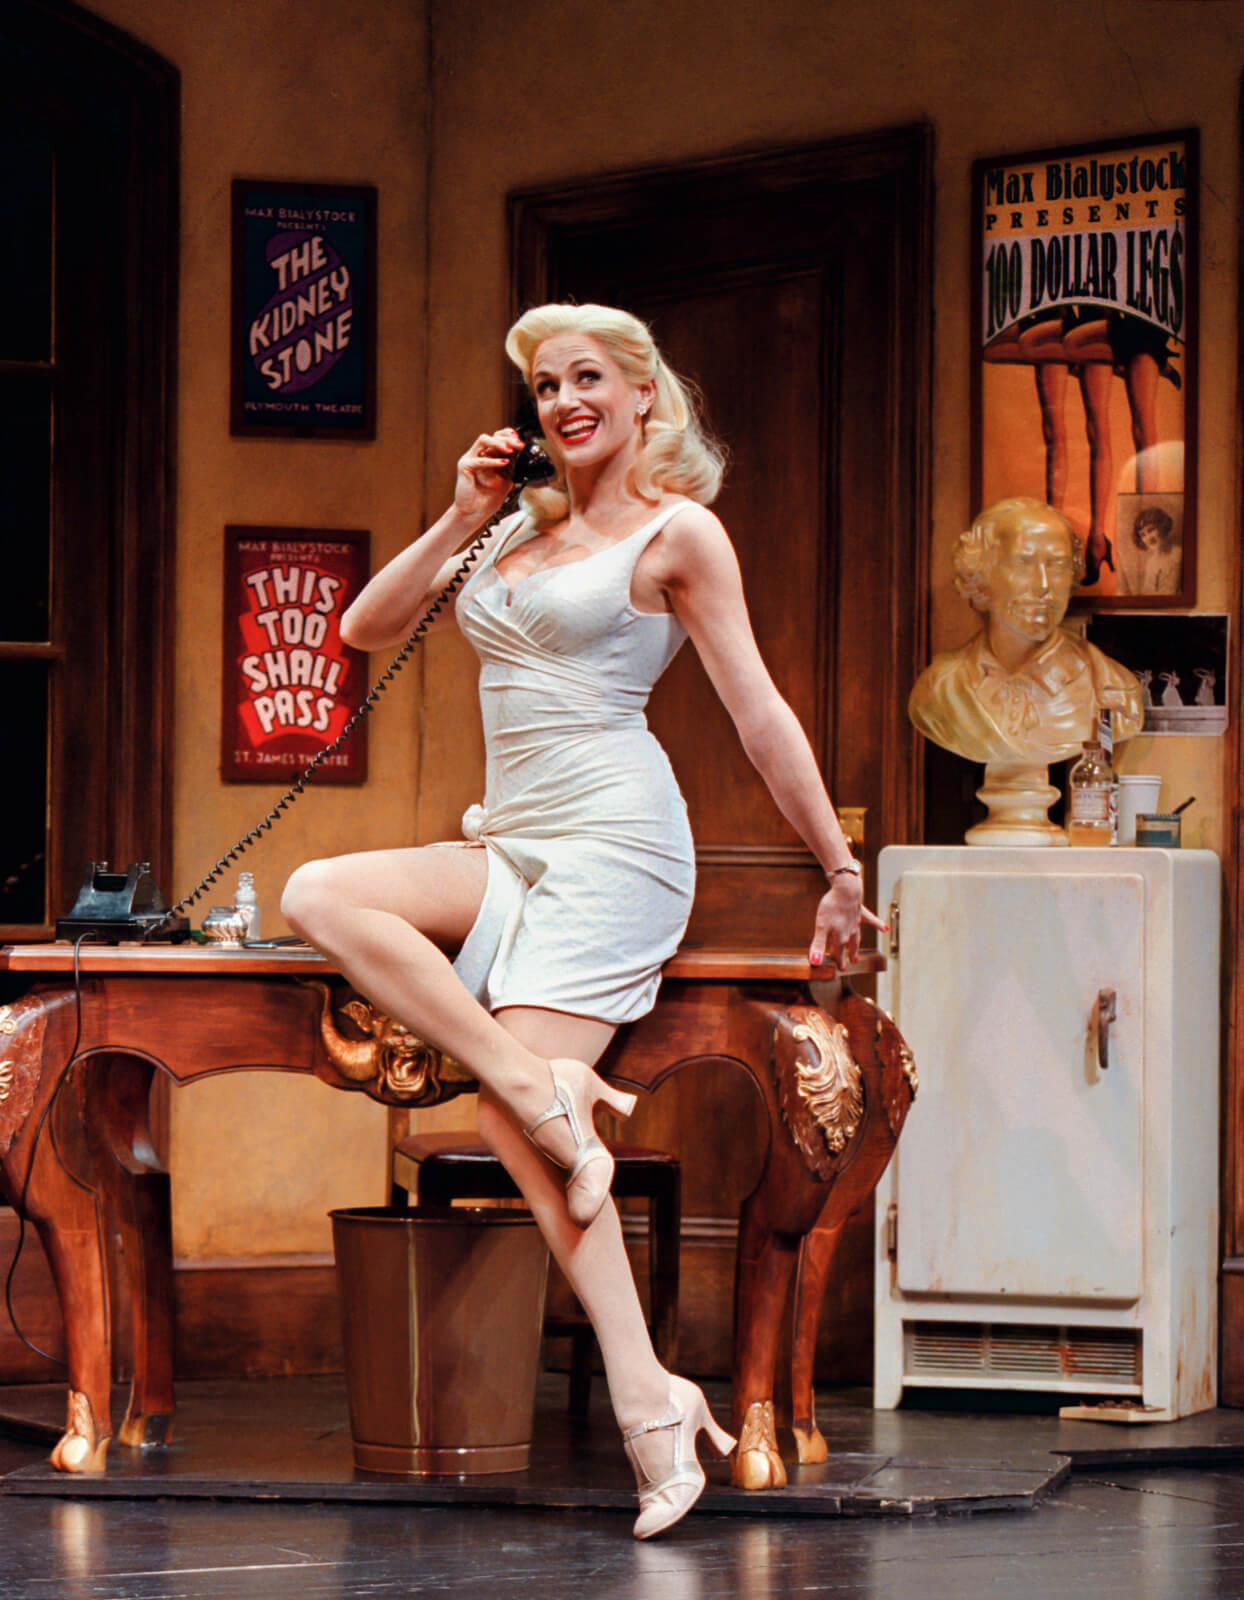 Ulla (Cady Huffman) answering the telephone sitting on a desk.